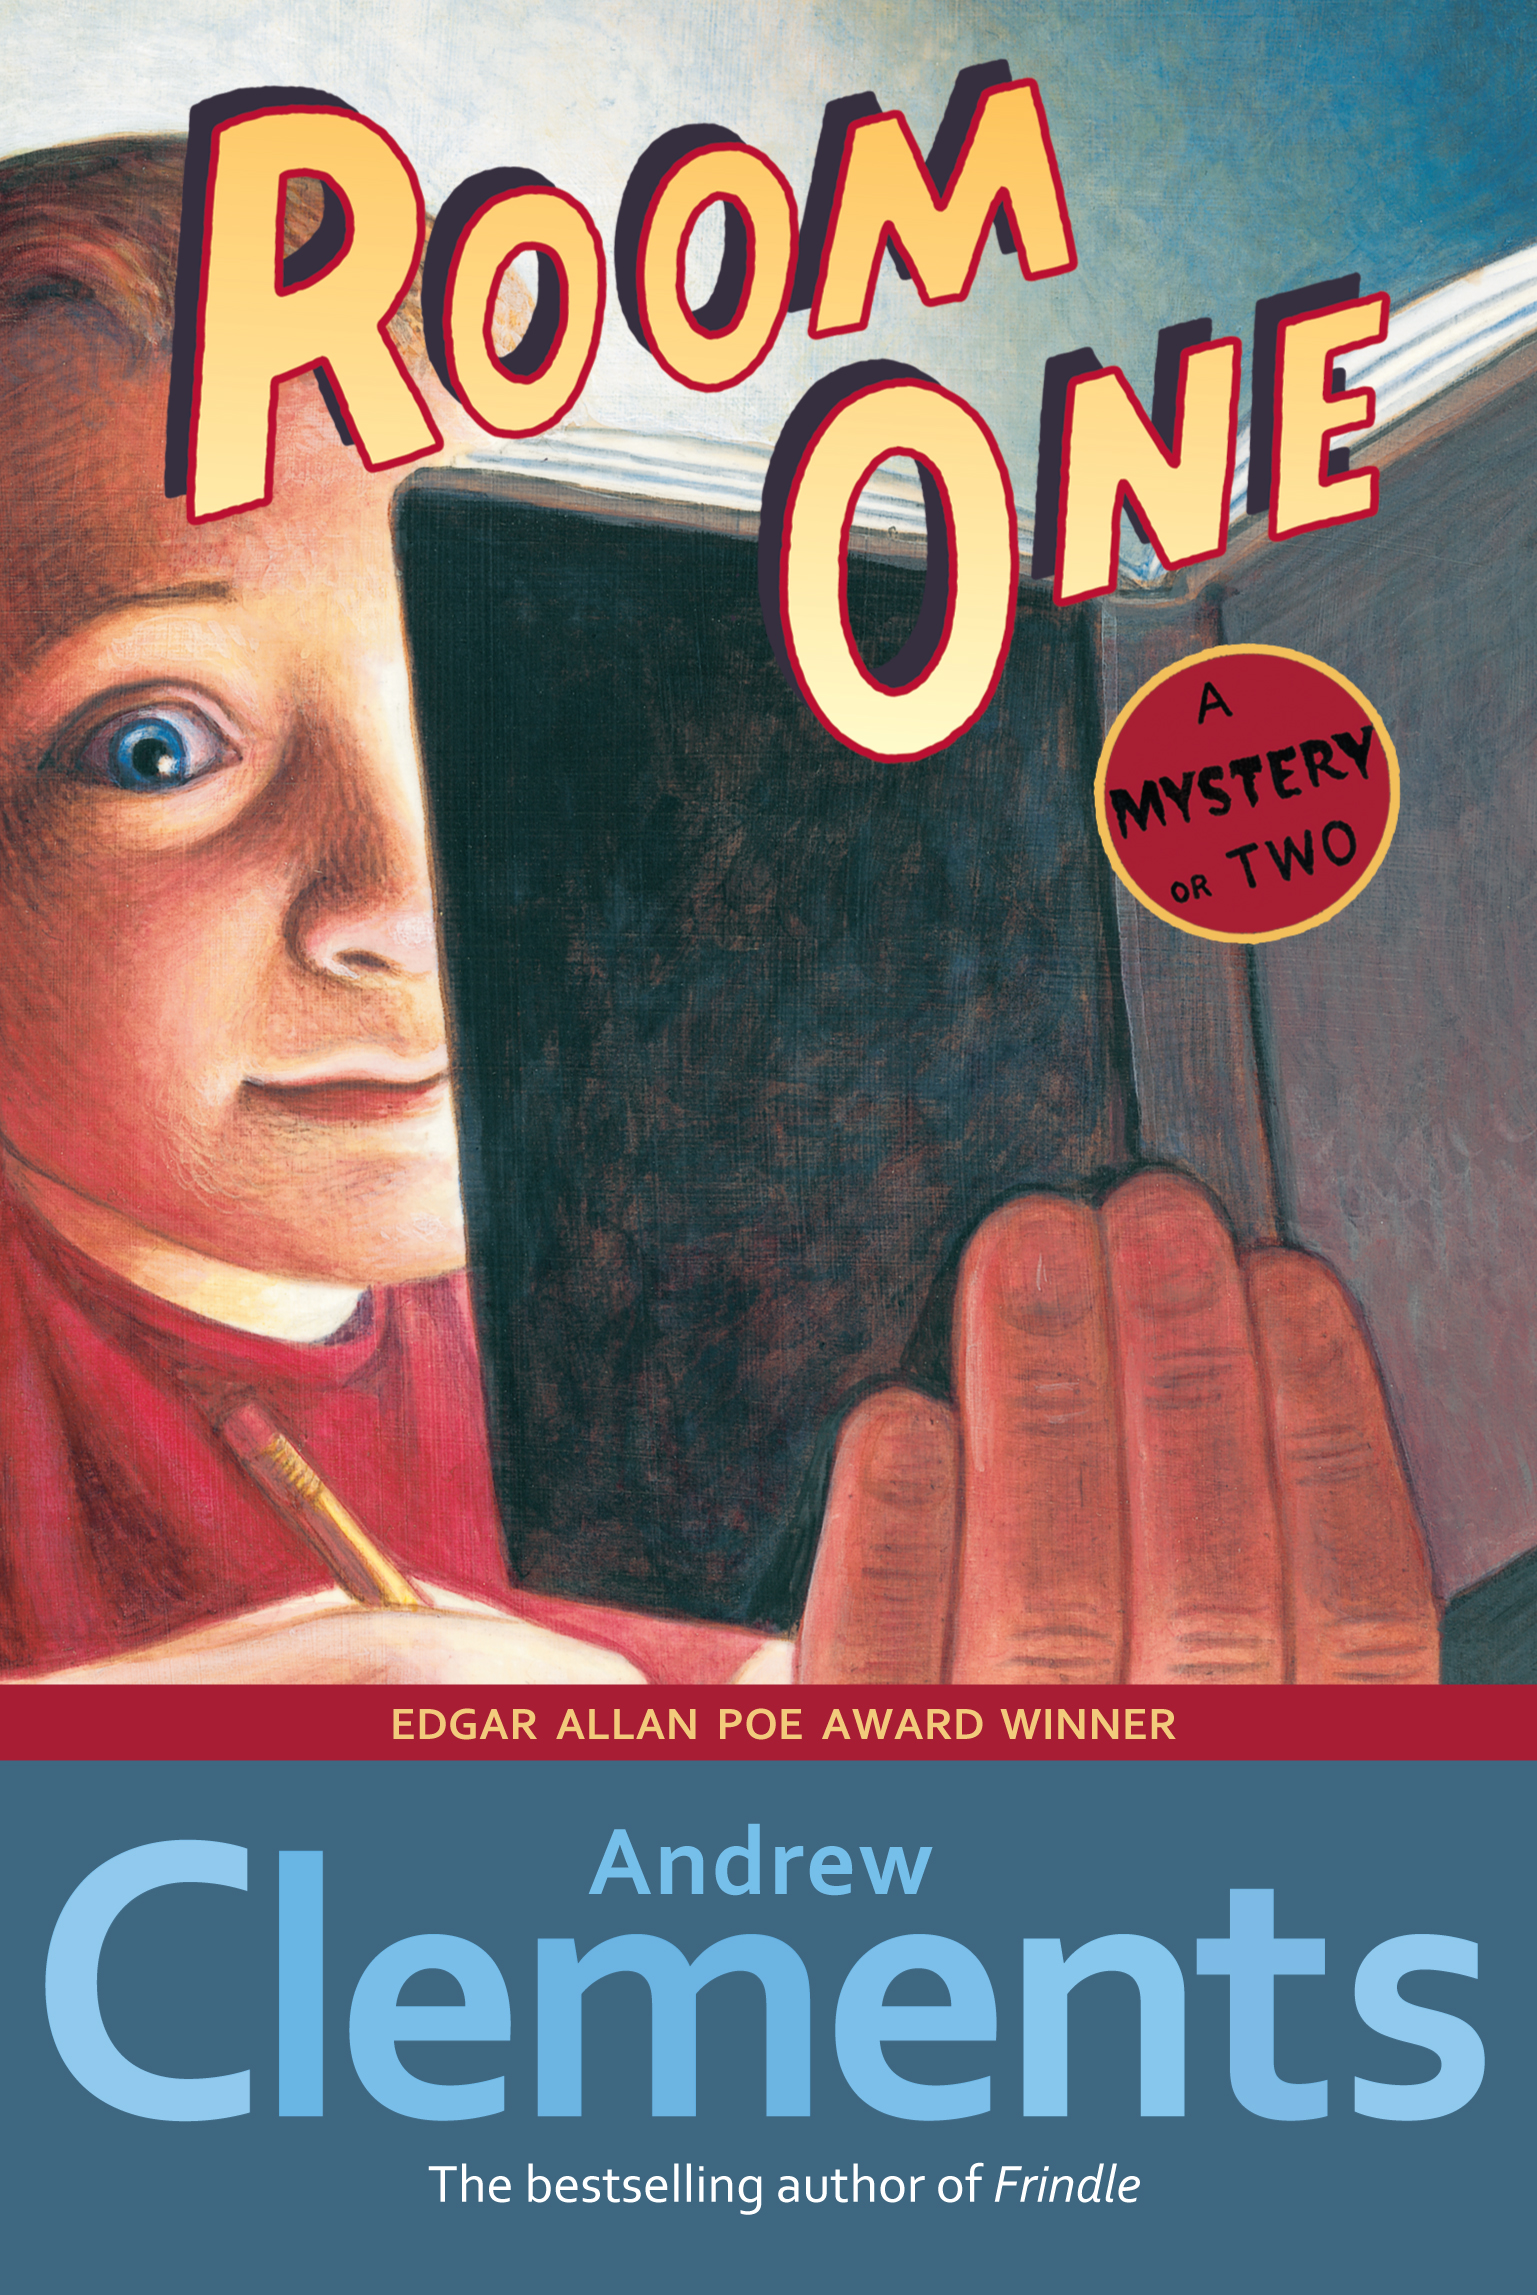 Room one book by andrew clements mark elliott official a mystery or two publicscrutiny Gallery